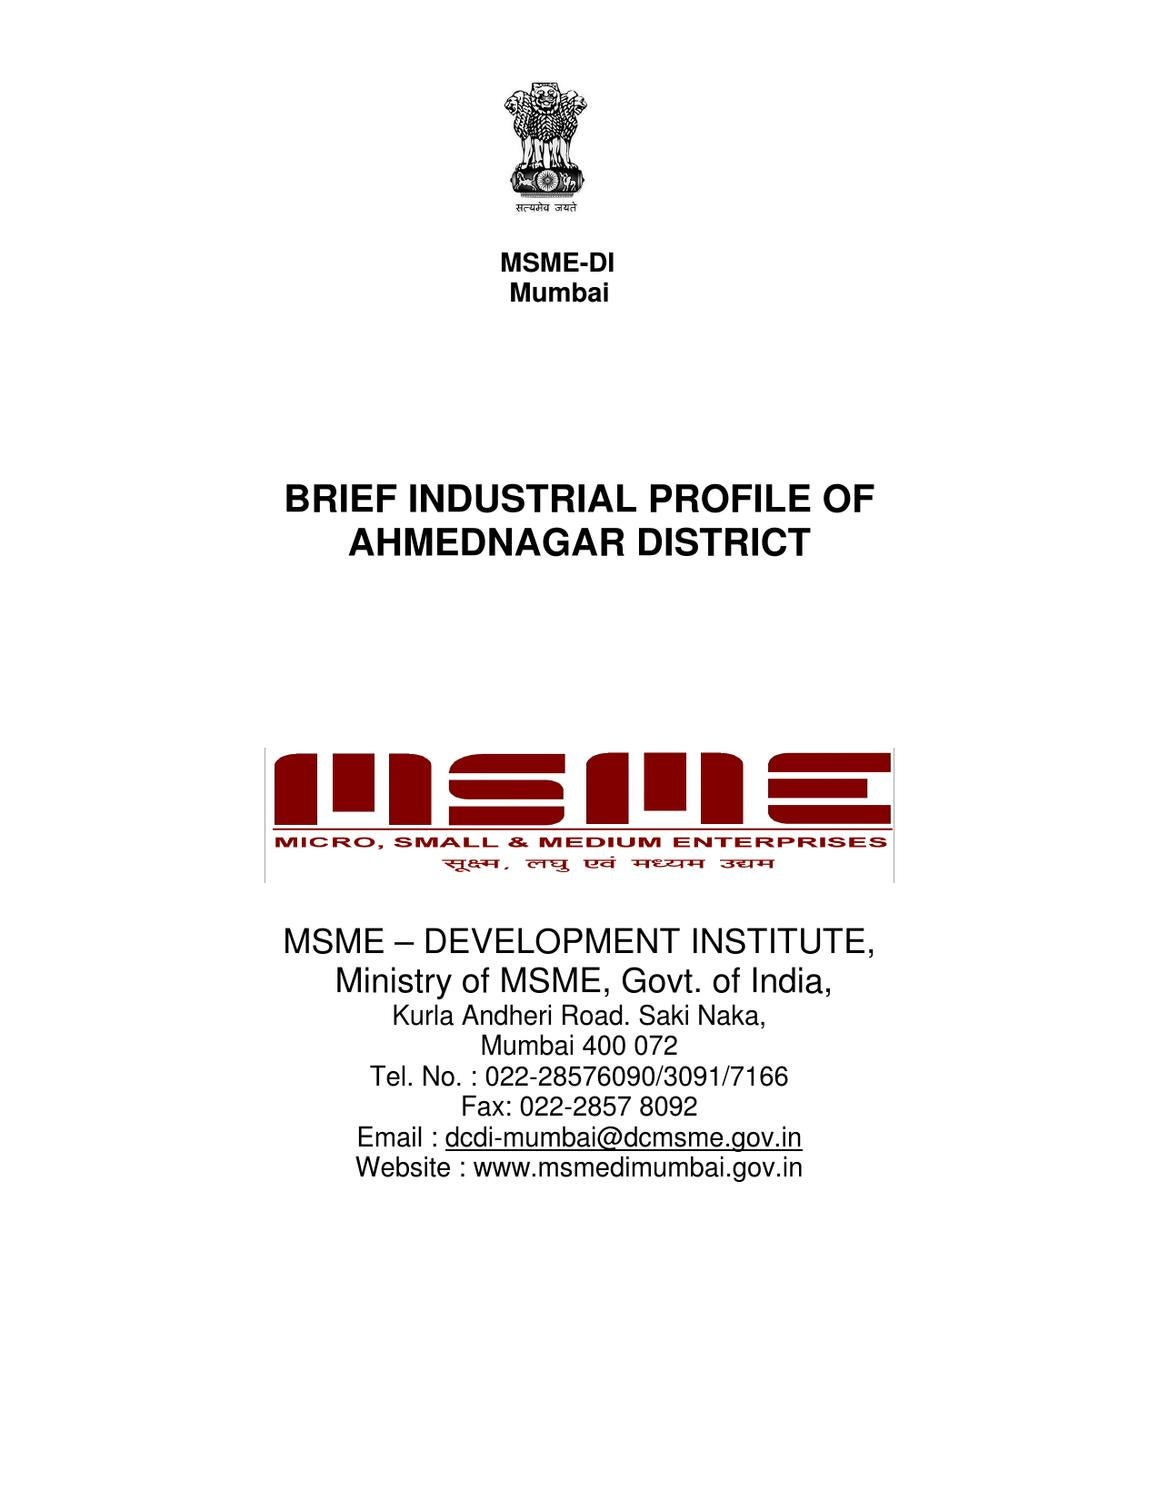 District Industries Profile of Ahmednagar District of